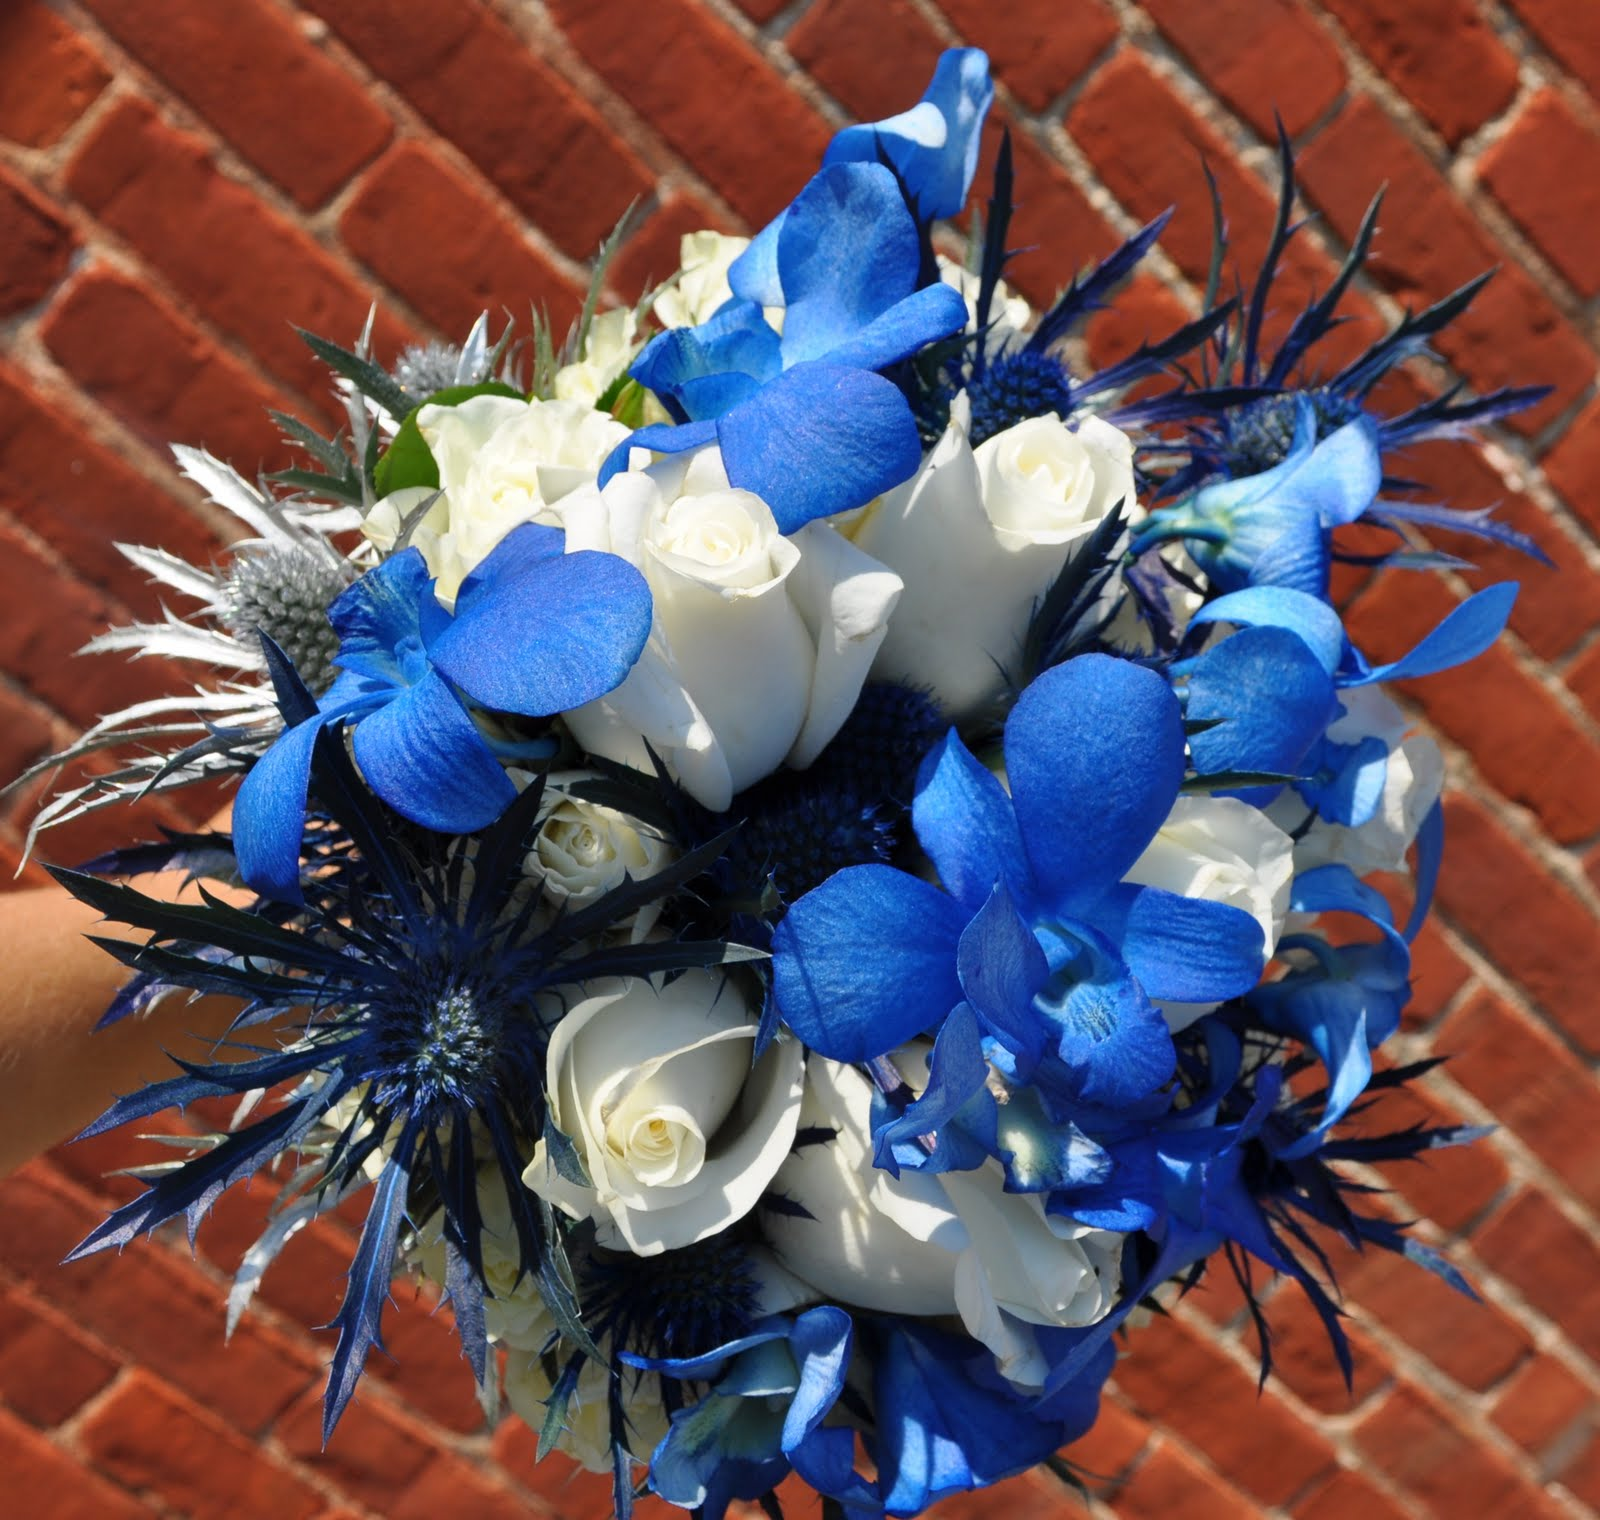 Blue wedding flowers in july best ideas about july flowers on june blue wedding flowers in july bold blue silver wedding bouquets columbus ohio izmirmasajfo Choice Image